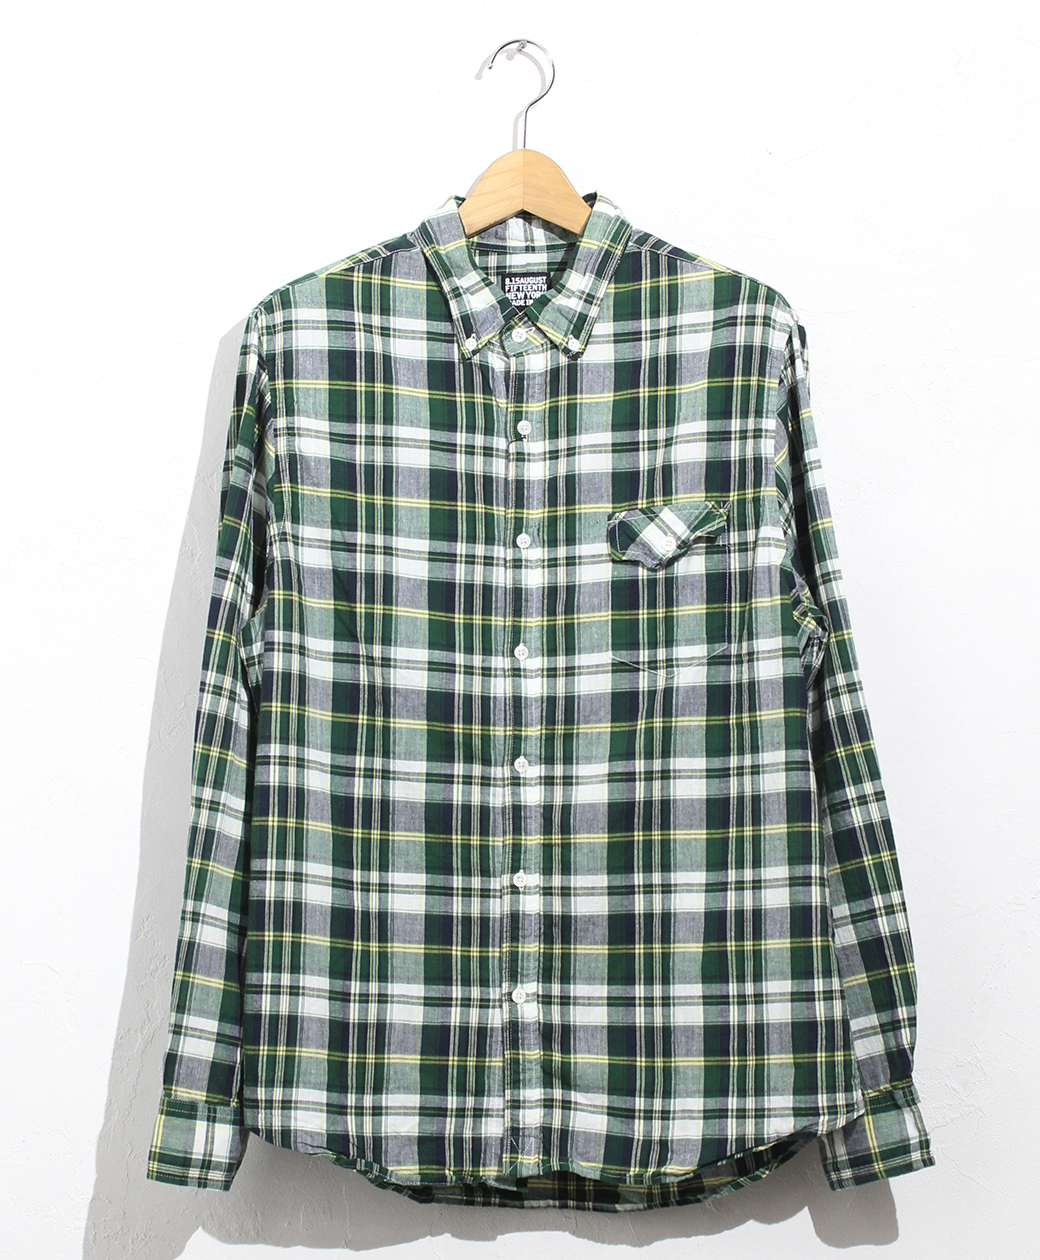 8.15 August Fifteenth NATURAL FIT B.D.SHIRT(VINTAGE MADRAS PLAID)